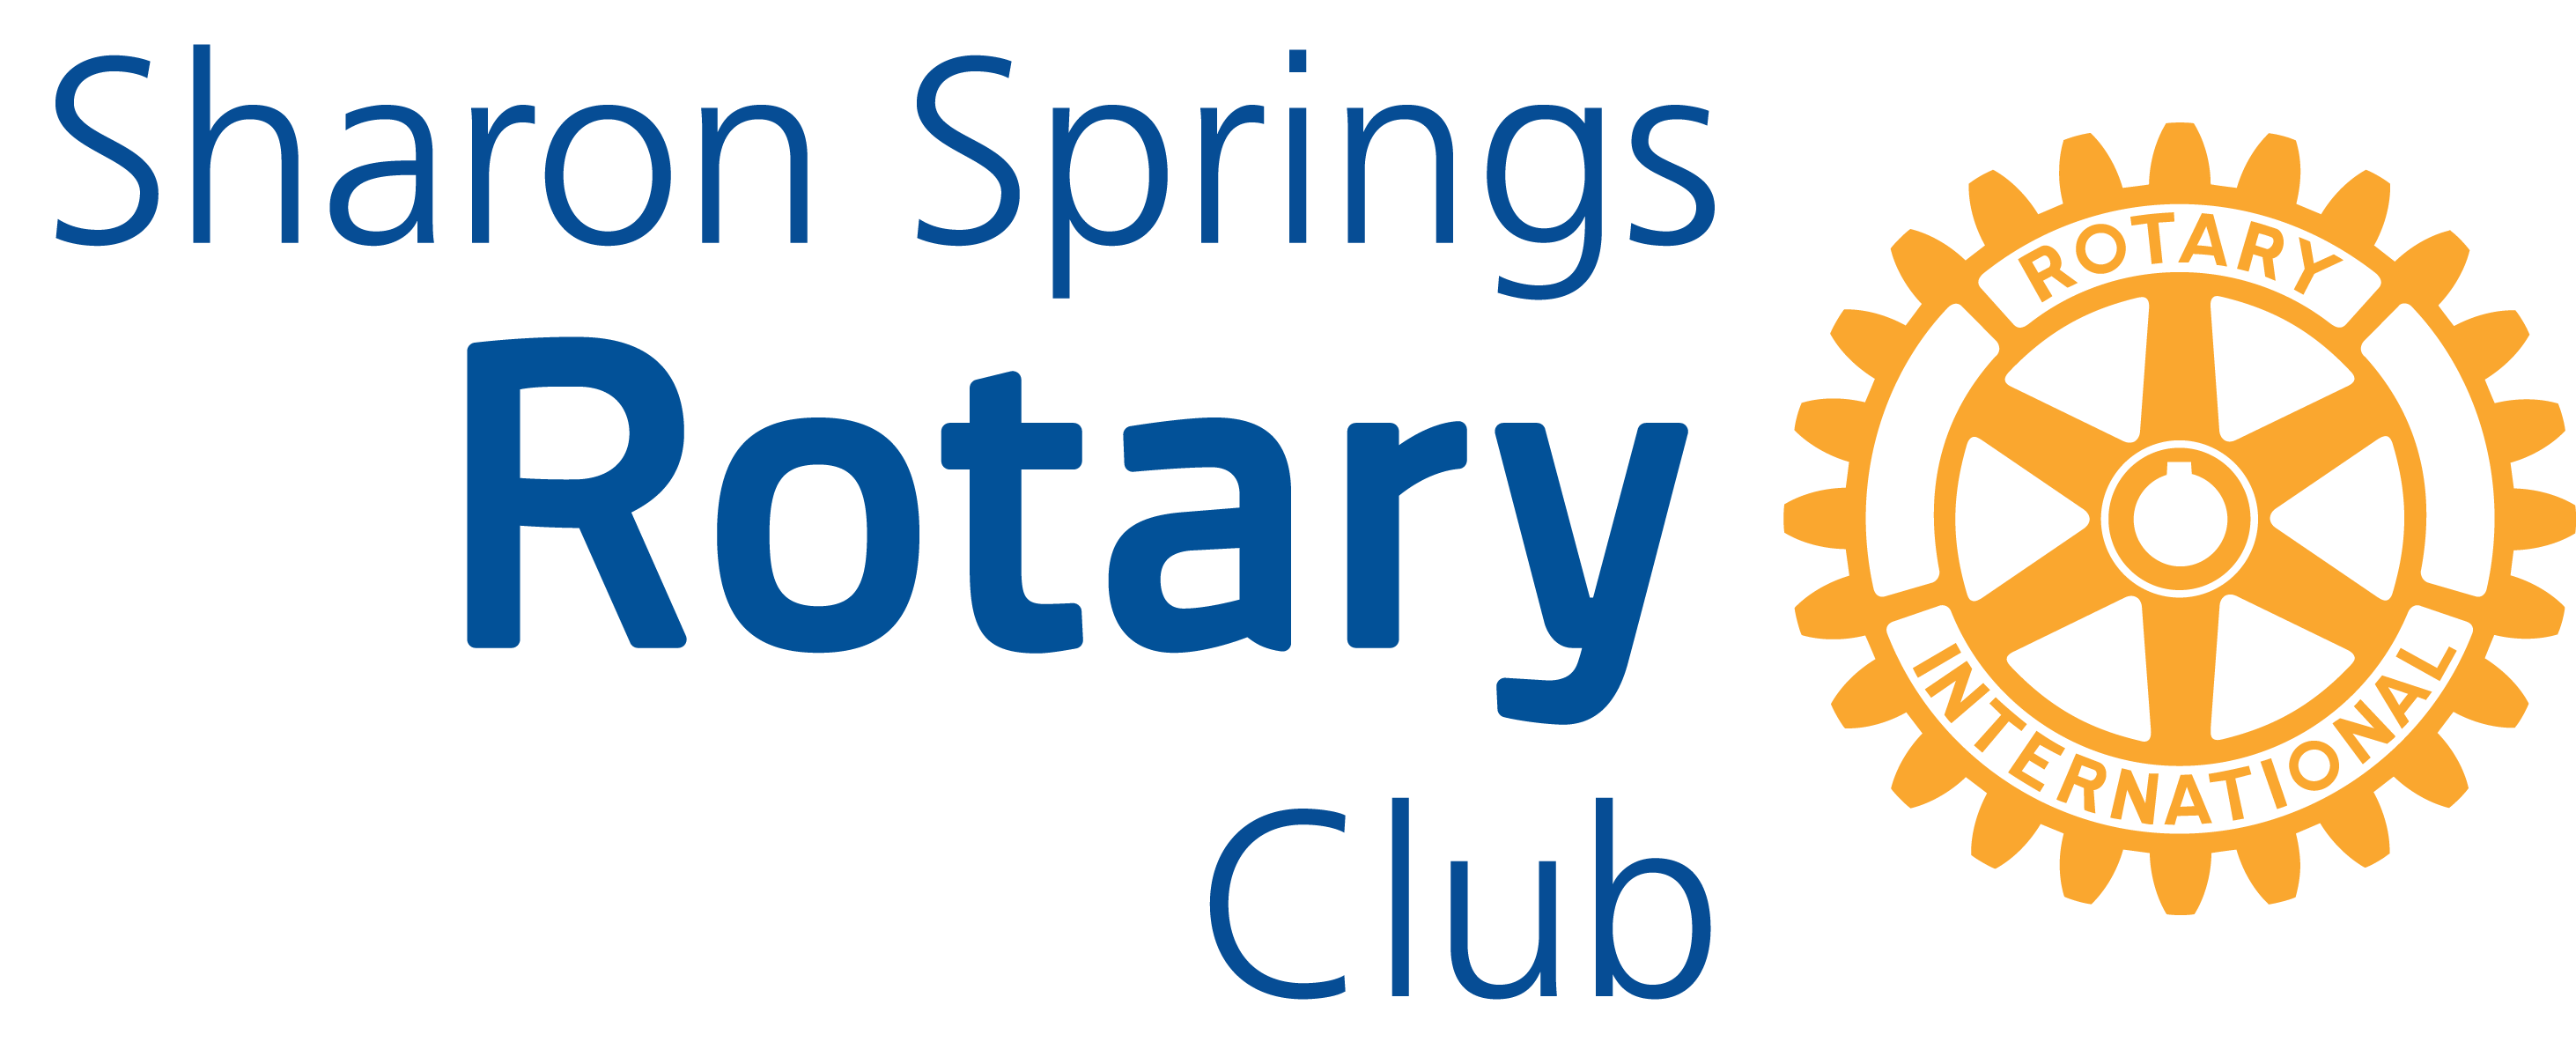 Sharon Springs Rotary Club